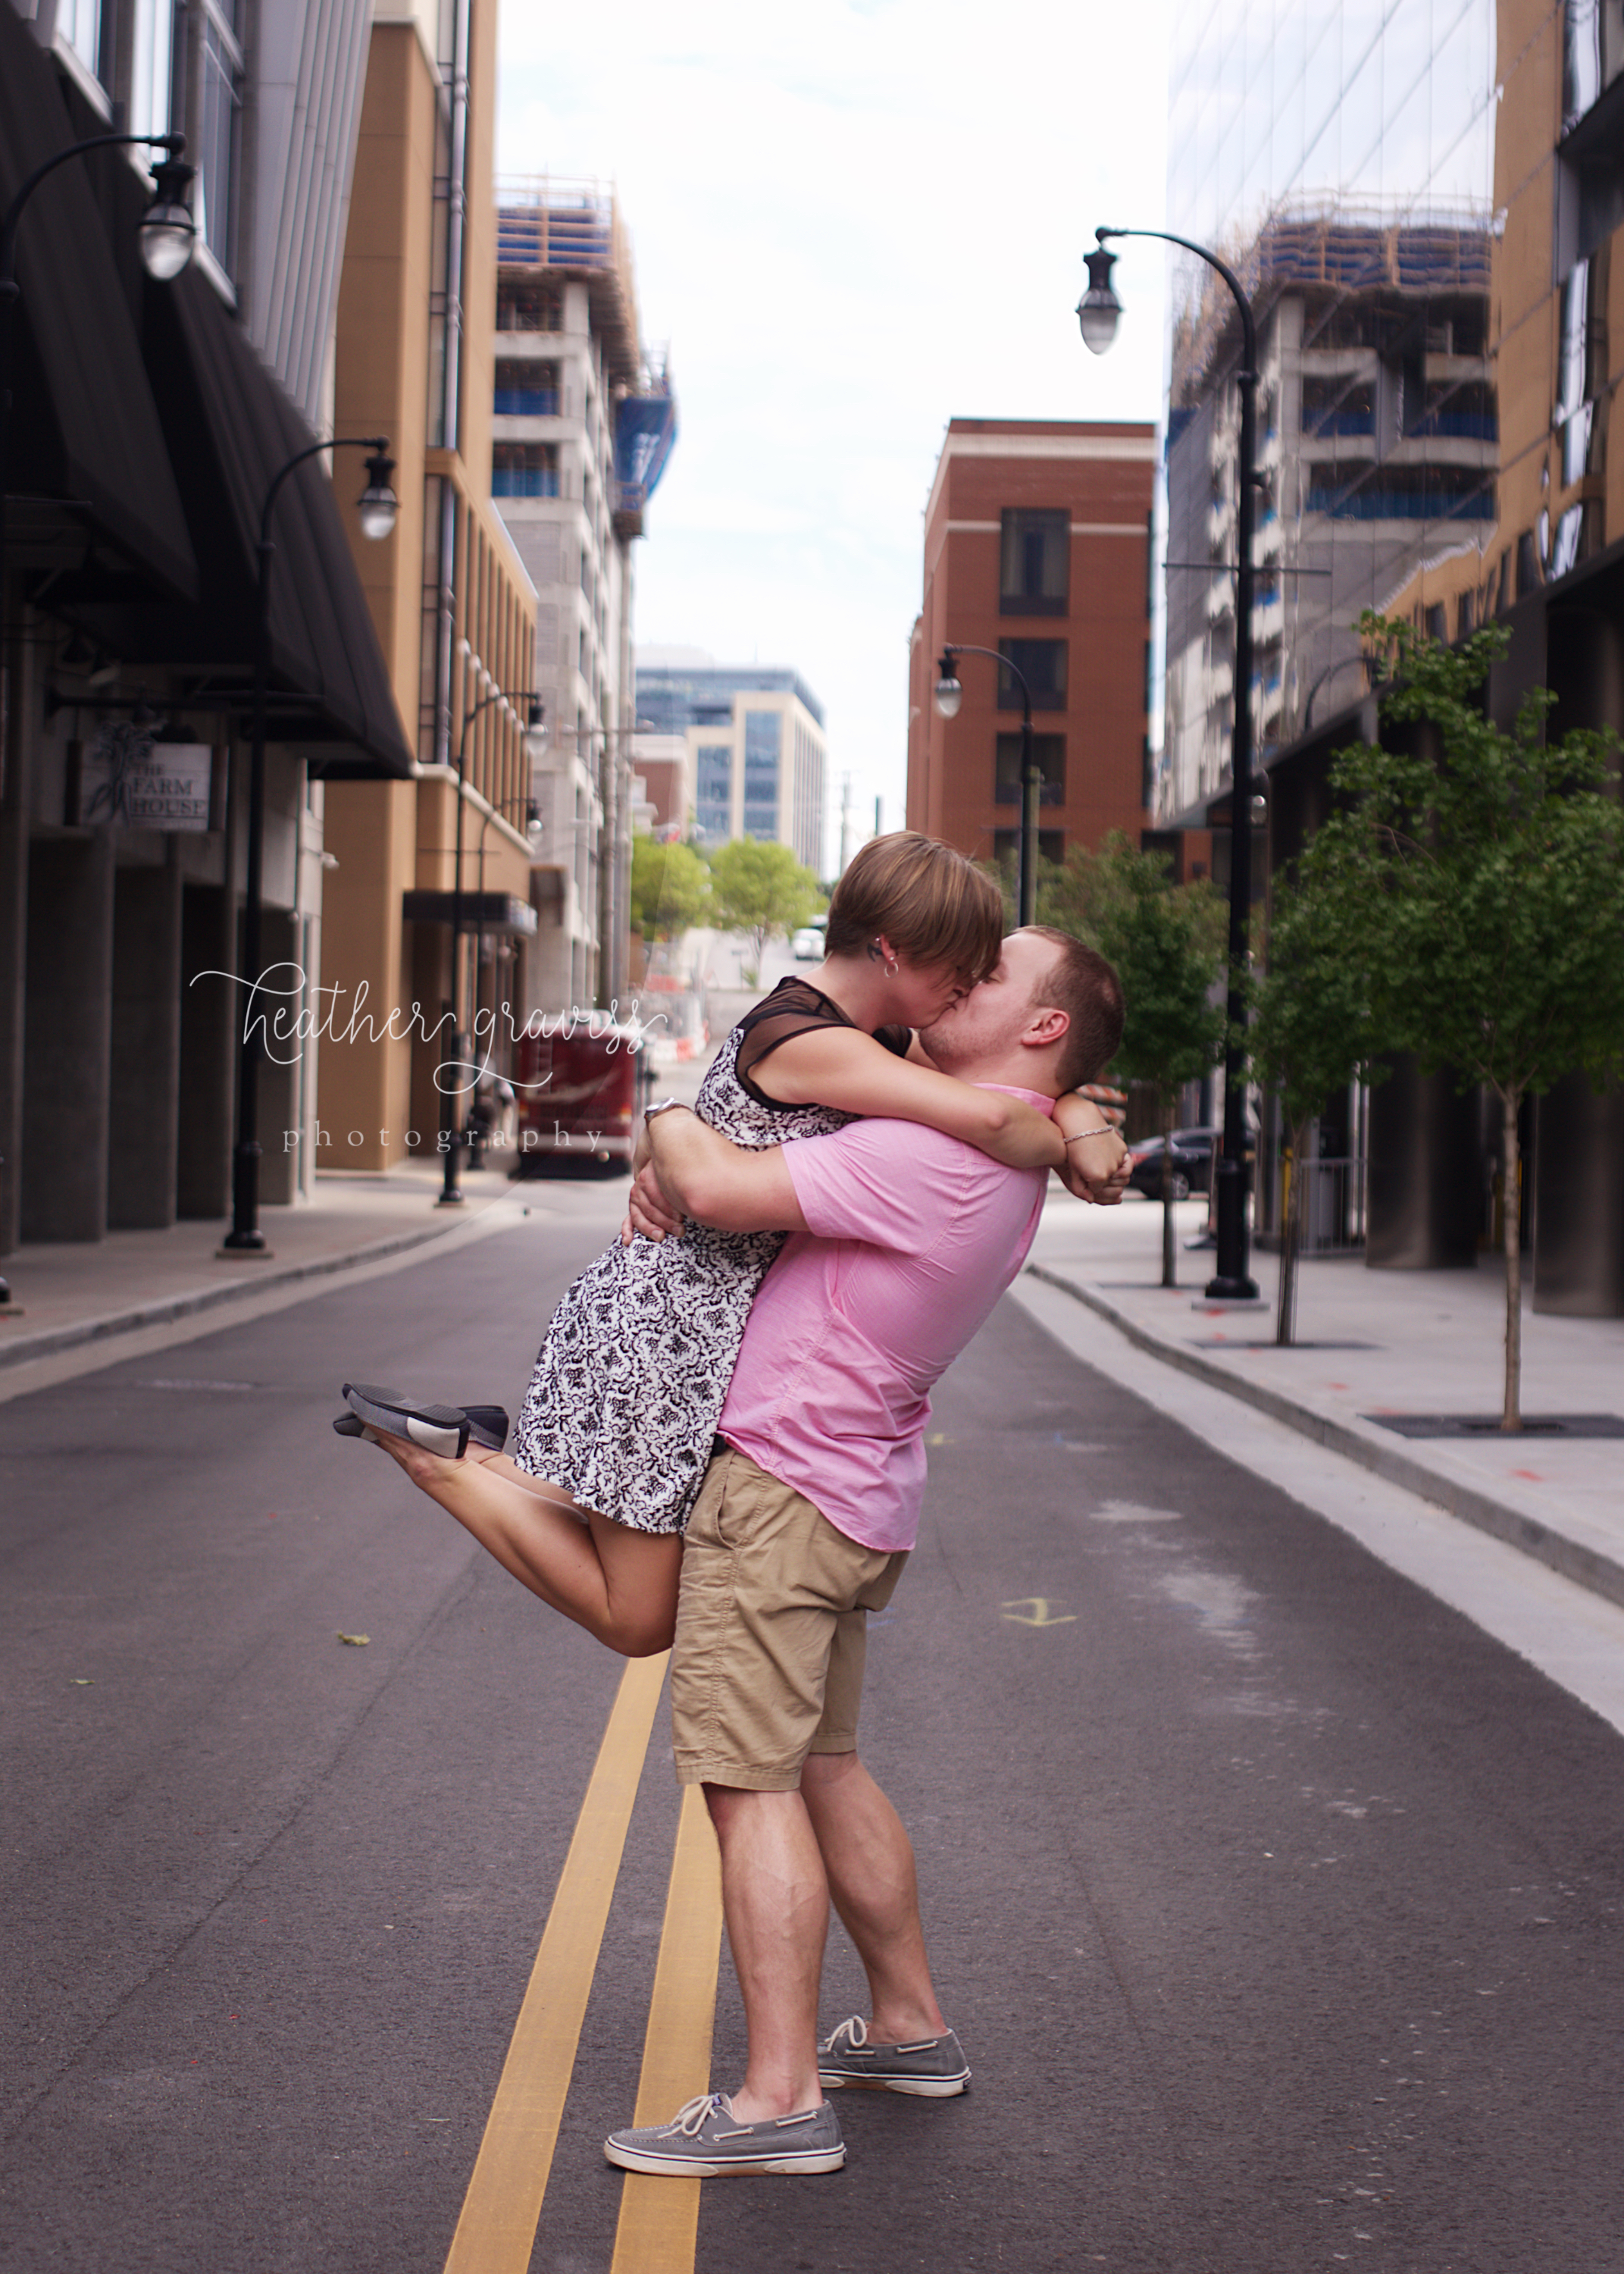 middle-of-the-street-kiss.jpg